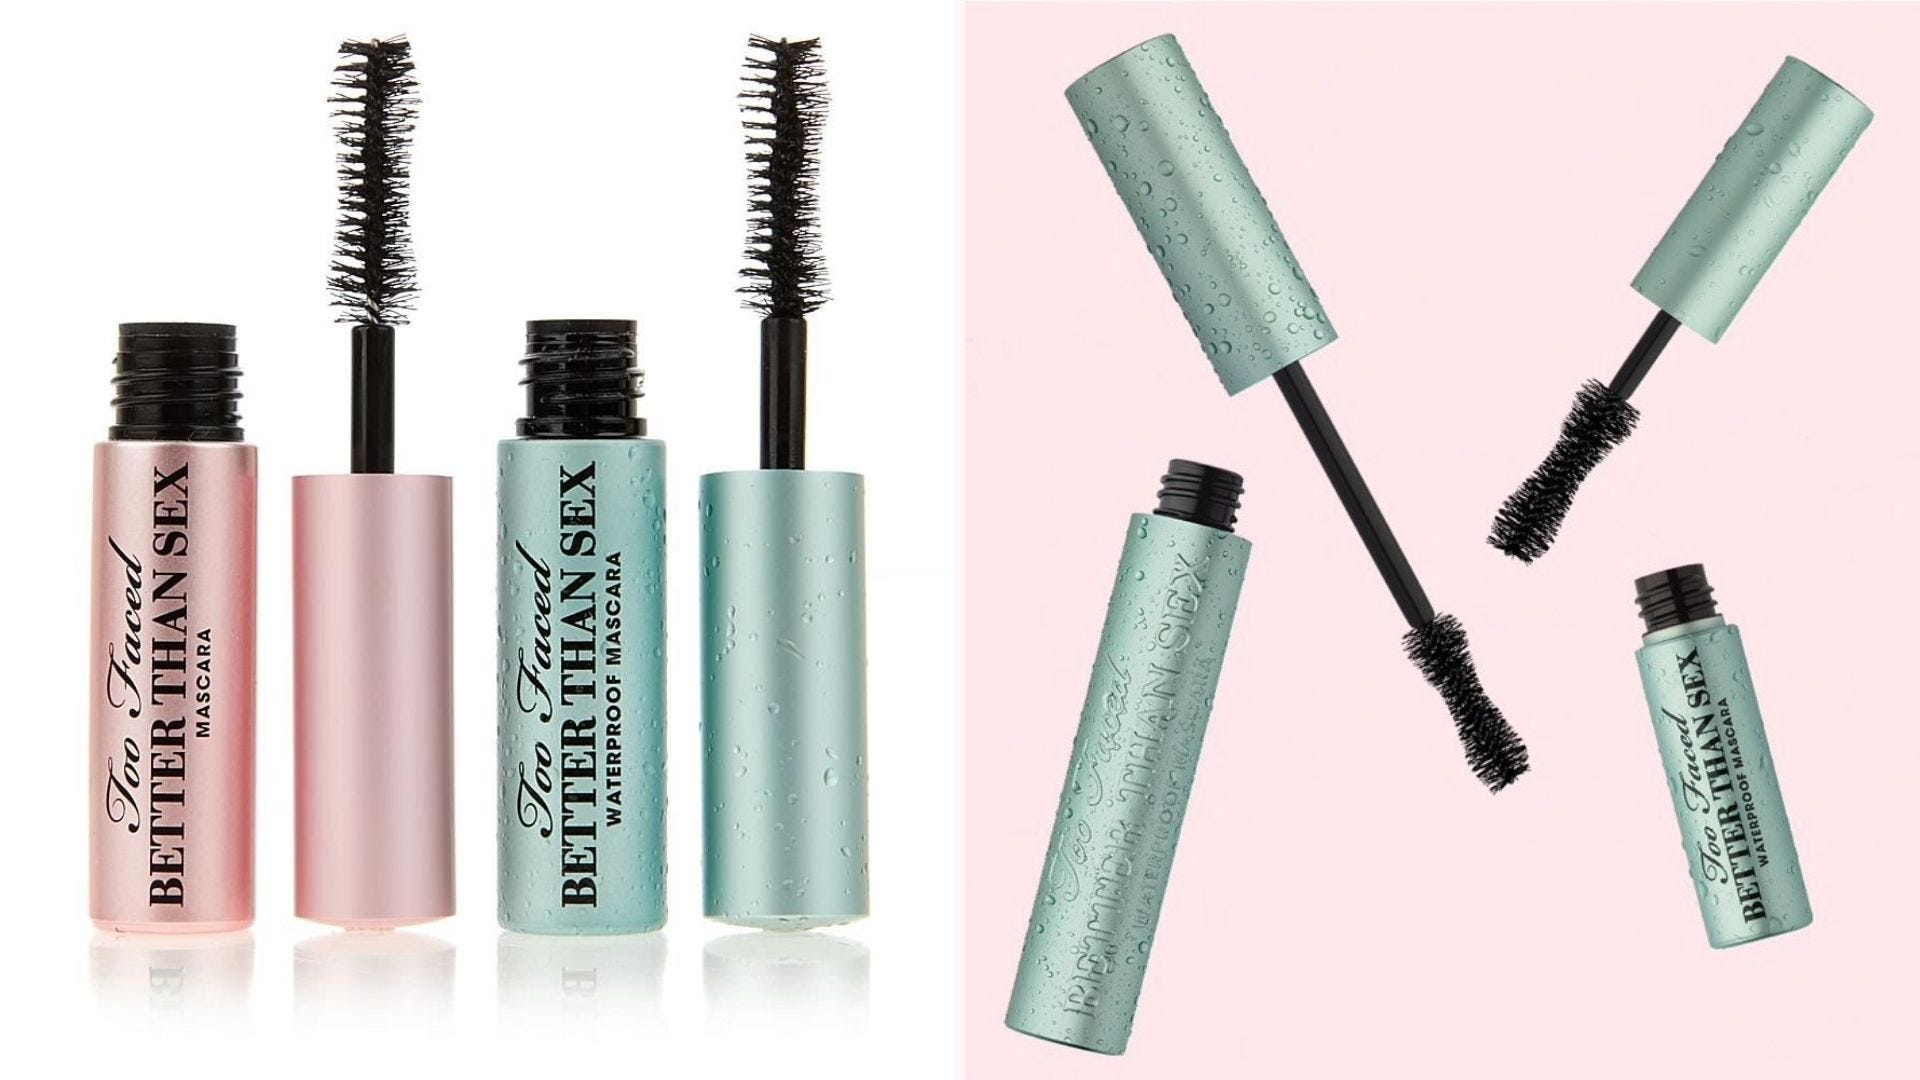 Several tubes of mascara with their wands pulled out